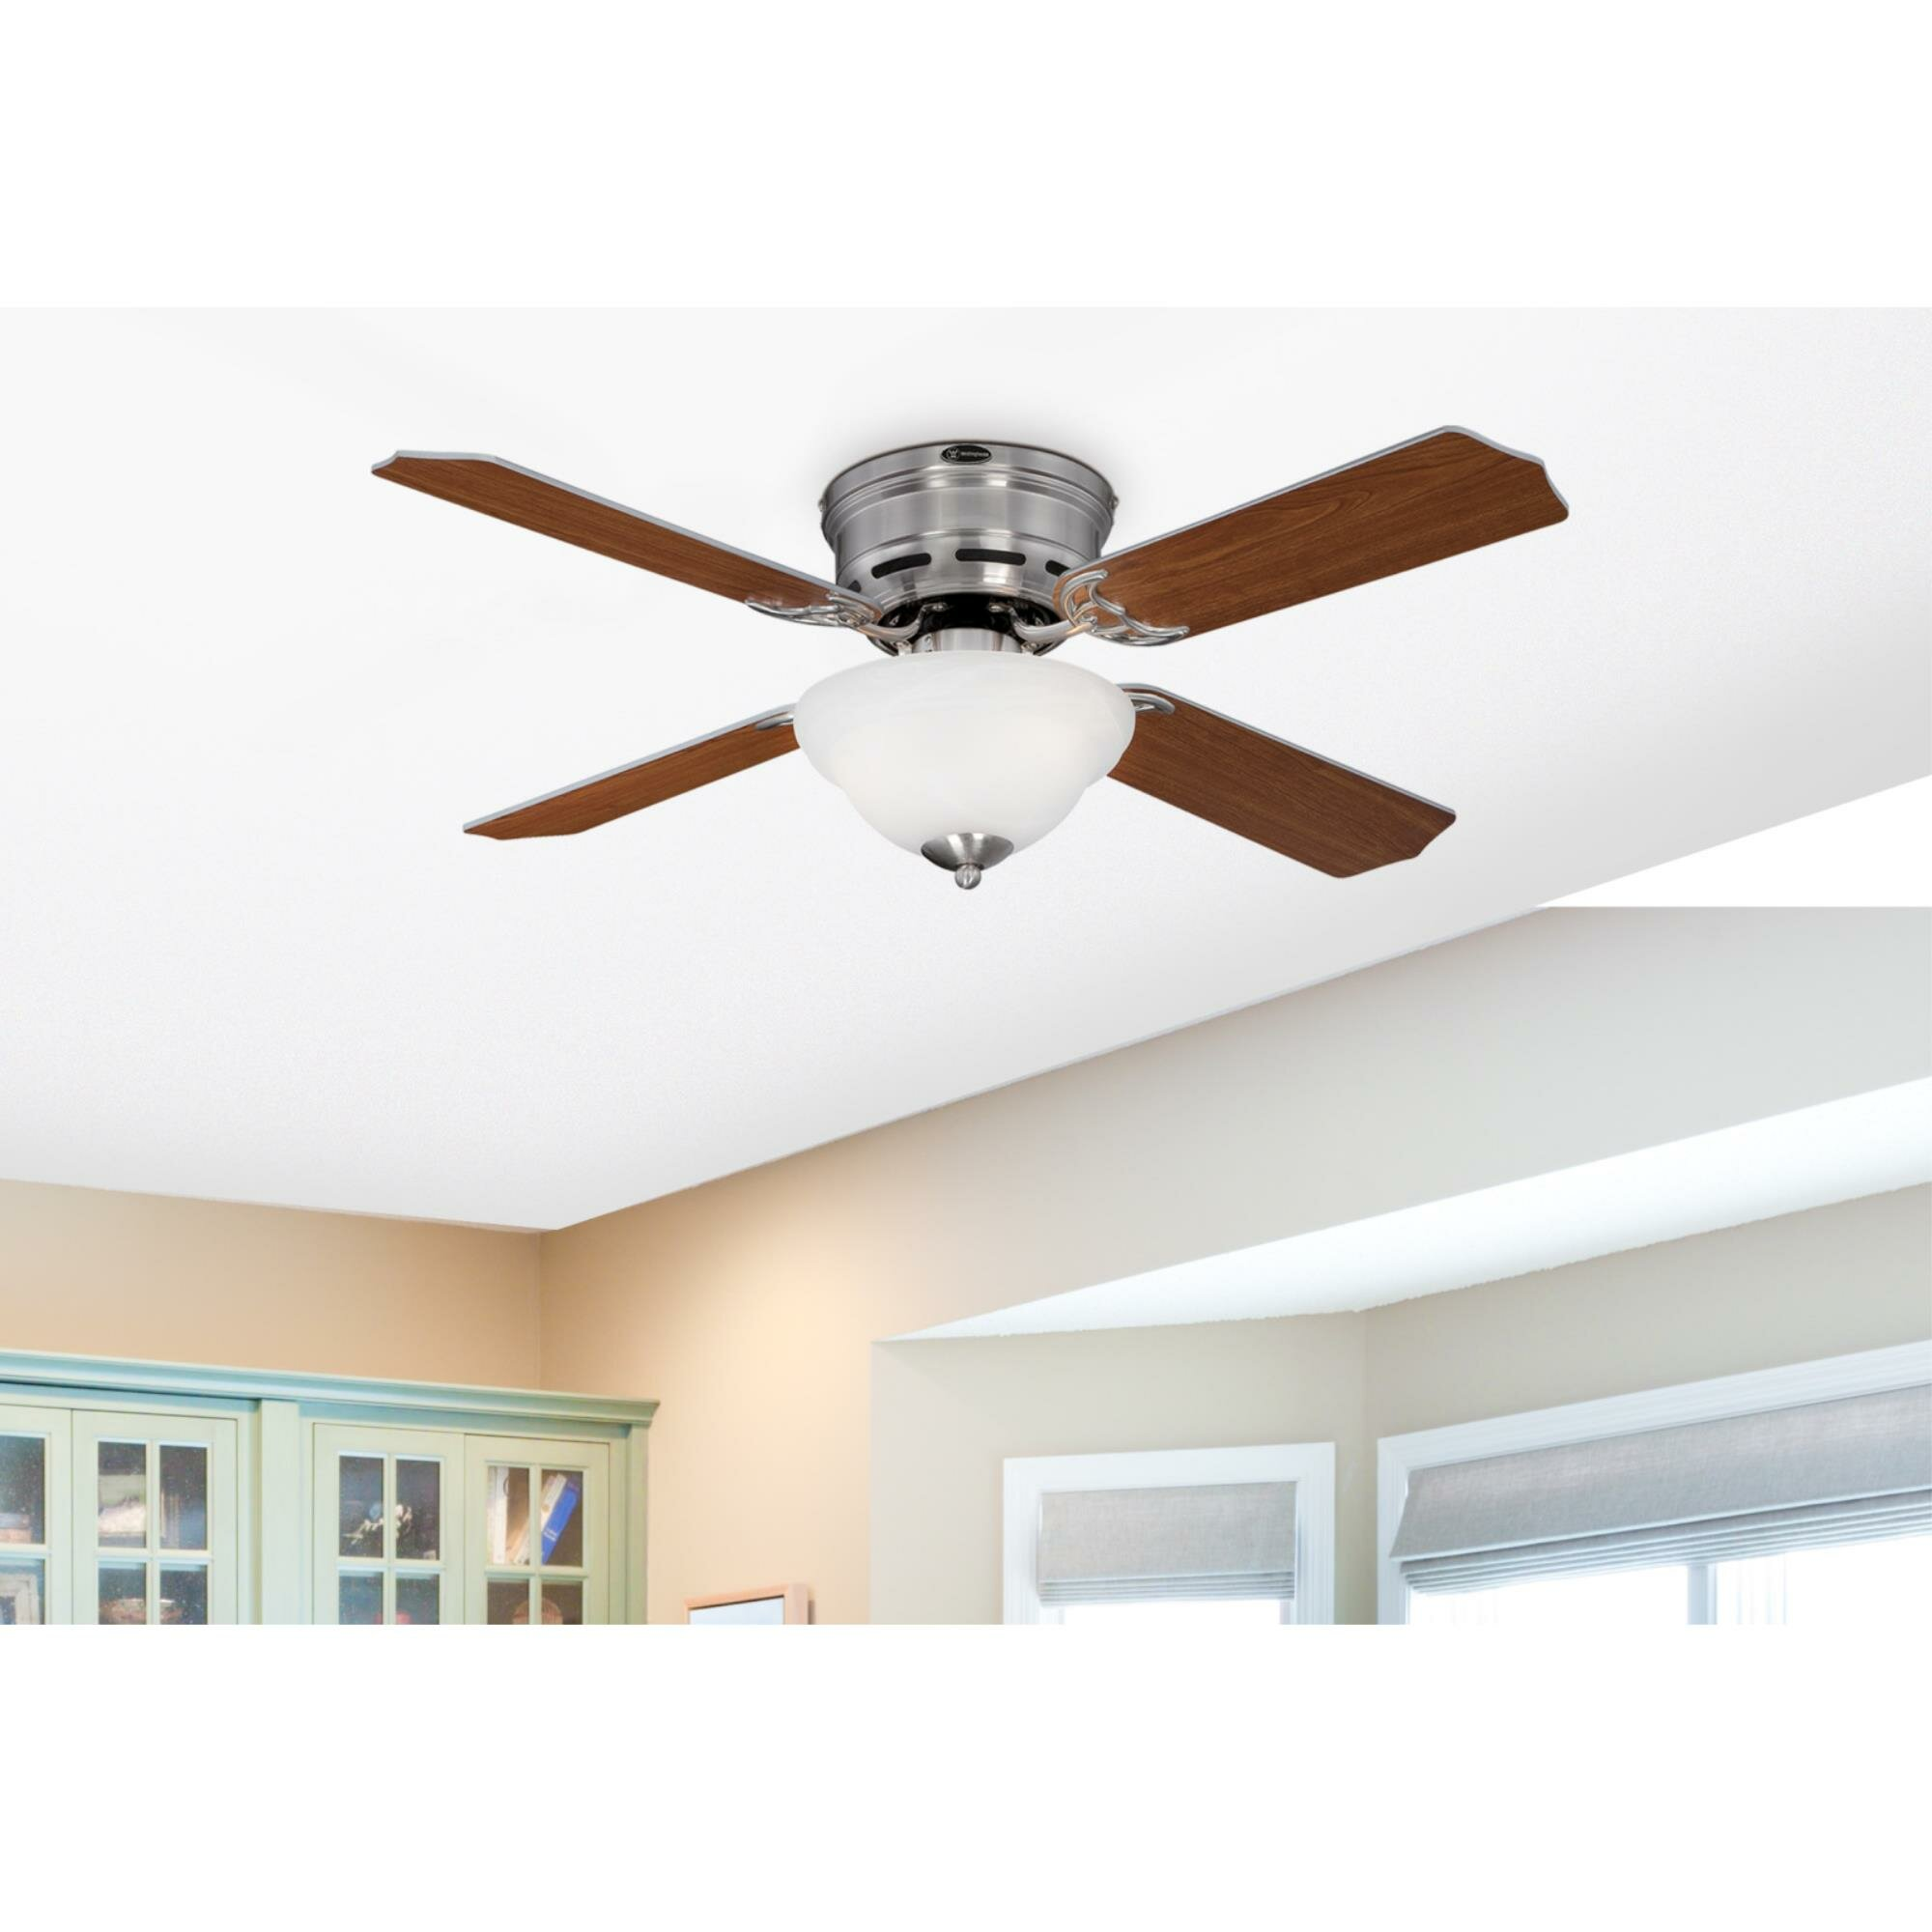 Westinghouse Lighting 42 Hadley 4 Blade Standard Ceiling Fan With Pull Chain And Light Kit Included Reviews Wayfair